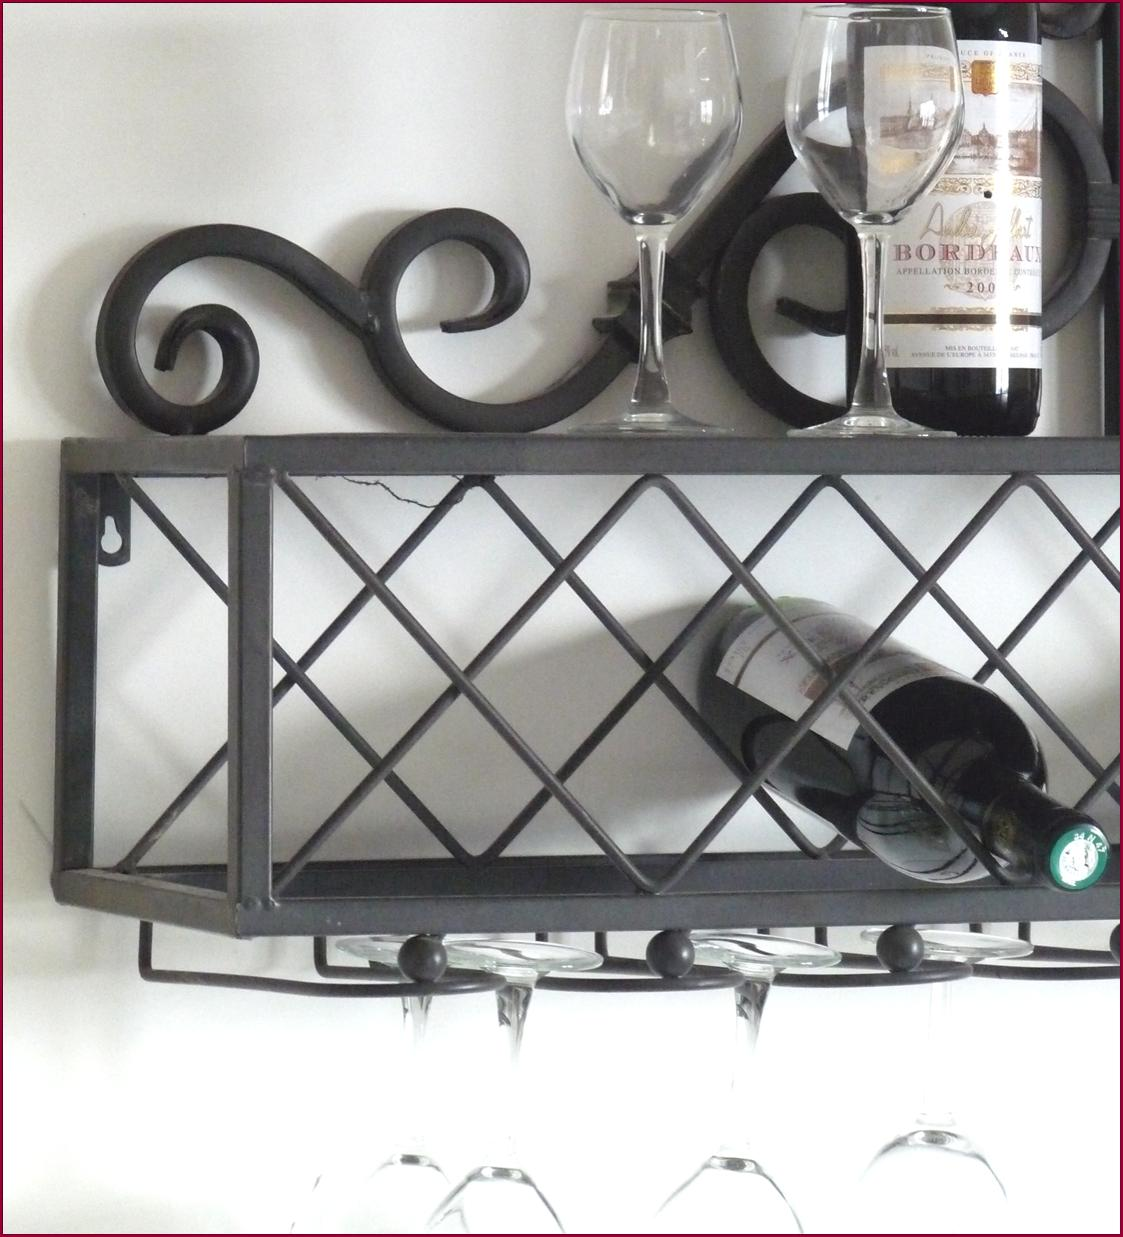 etagere console porte bouteille verre cave a vin bar de cuisine mural en fer ebay. Black Bedroom Furniture Sets. Home Design Ideas